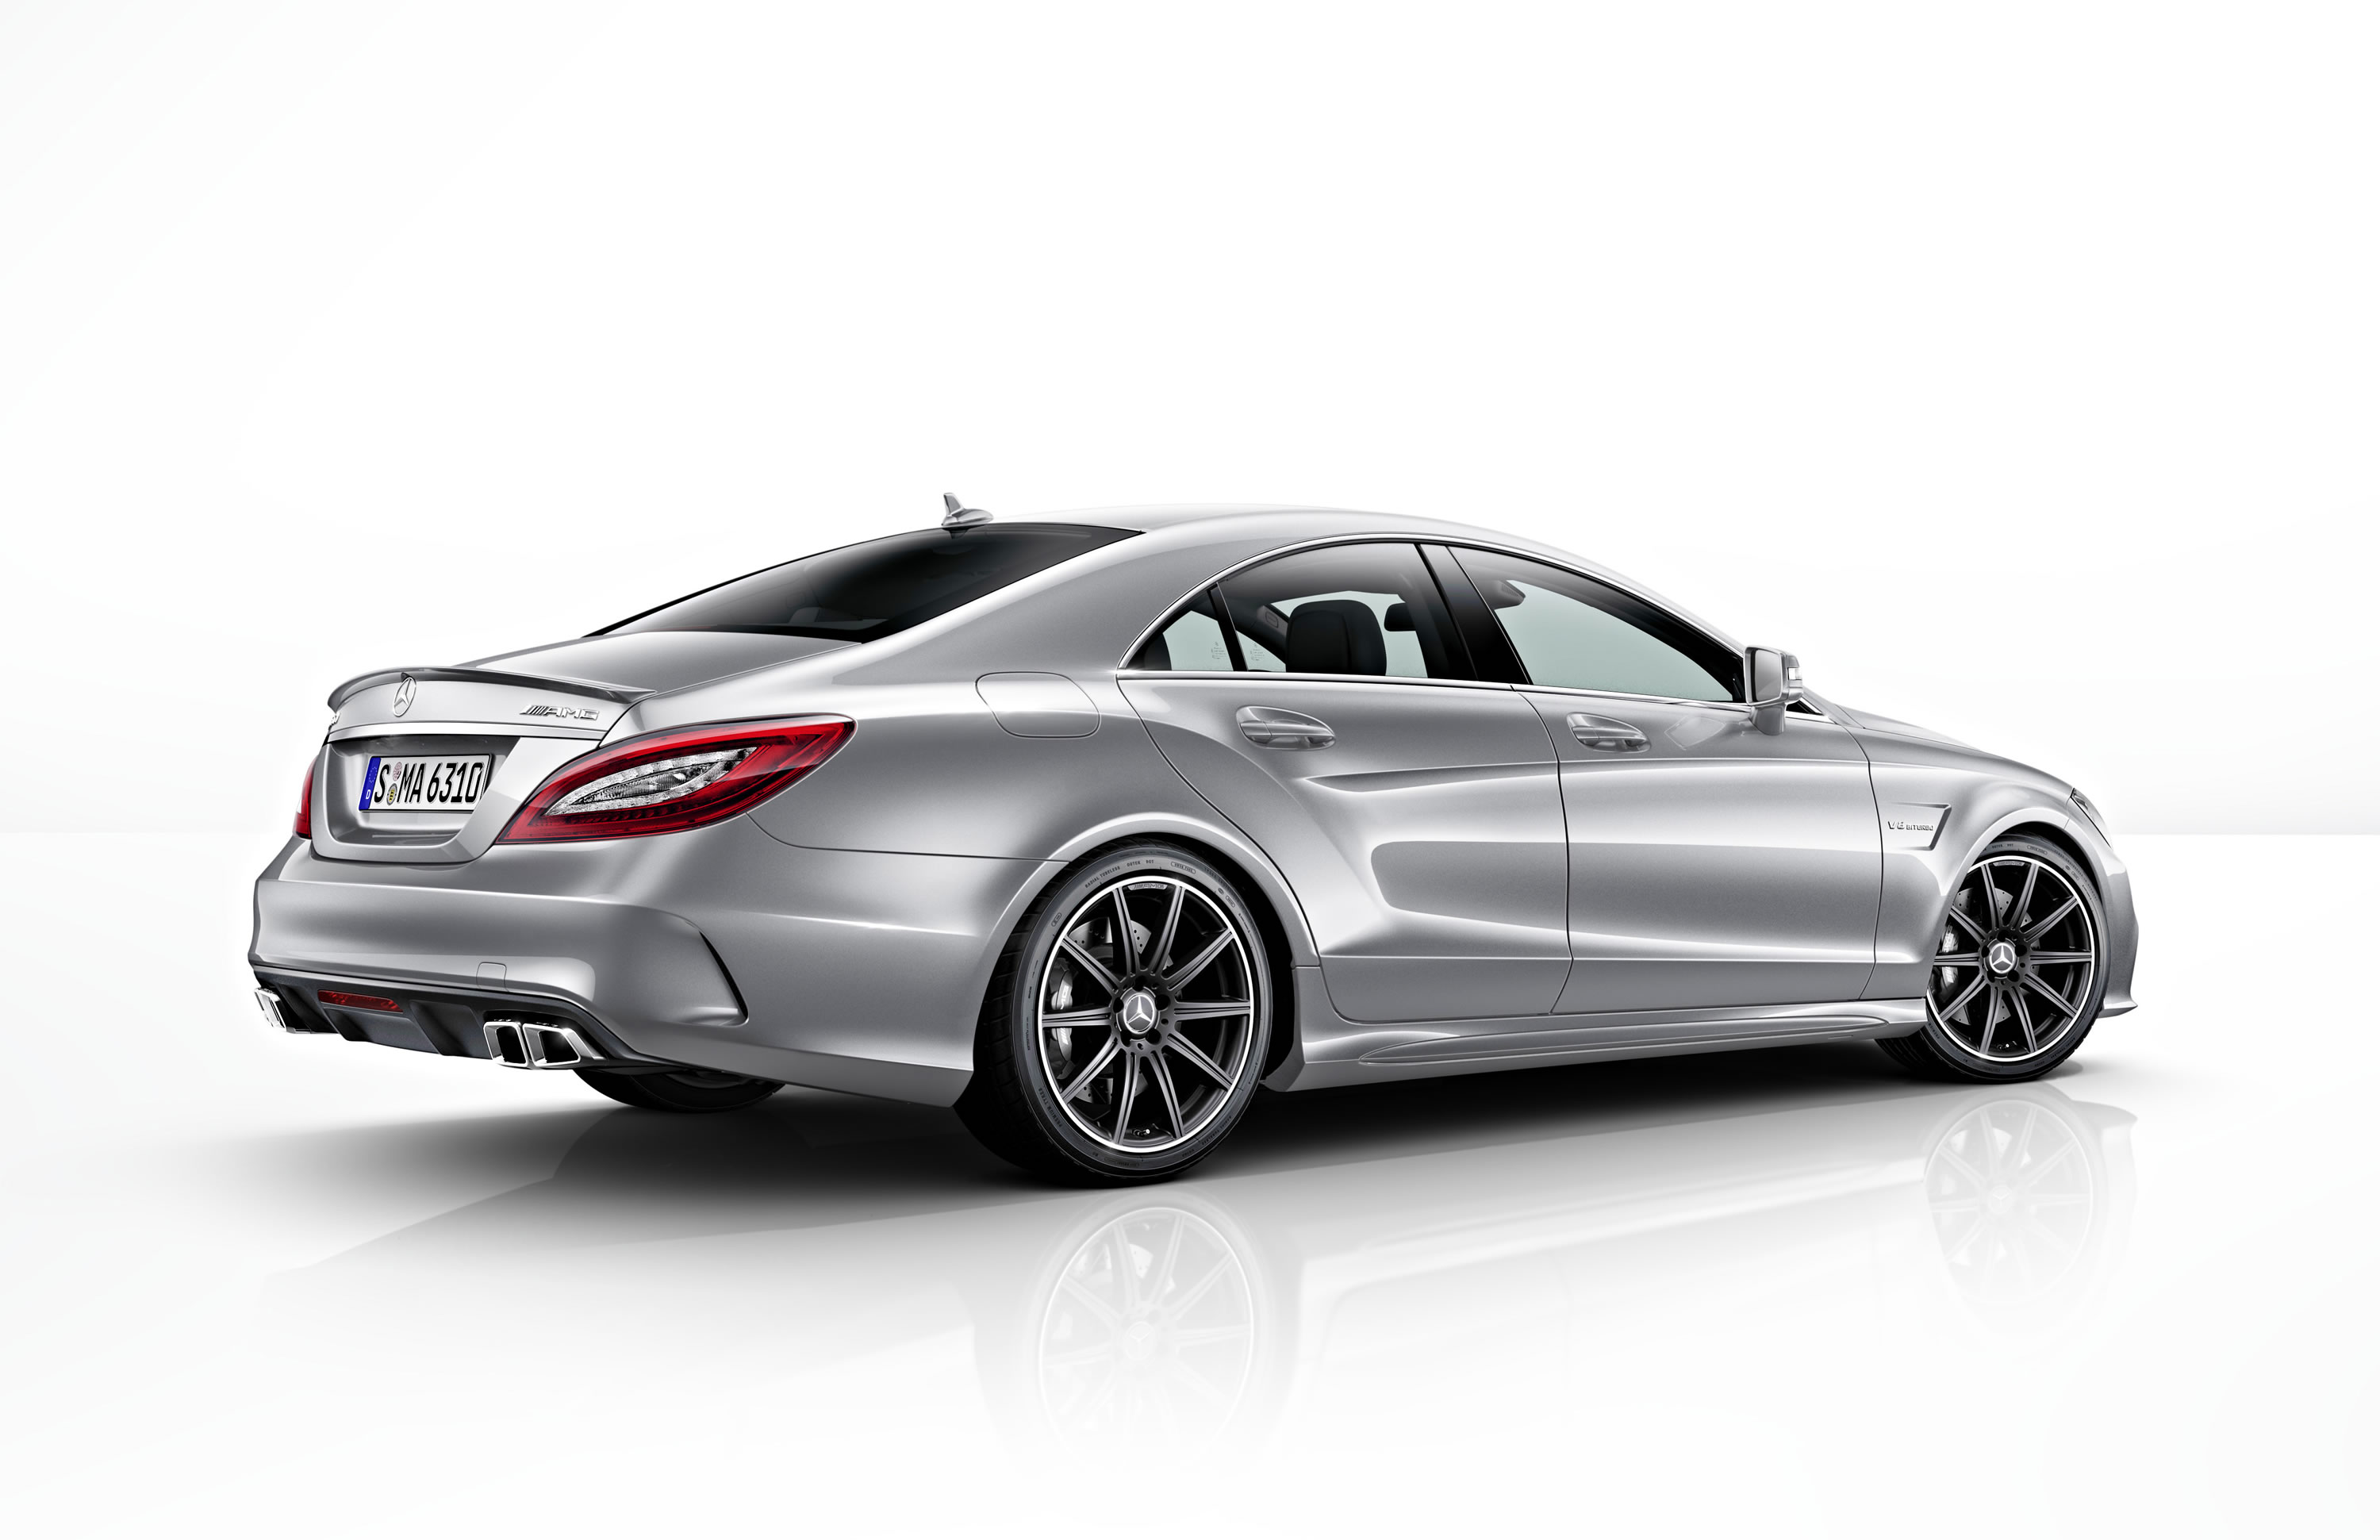 2015 mercedes benz cls63 amg photos specs and review rs. Black Bedroom Furniture Sets. Home Design Ideas